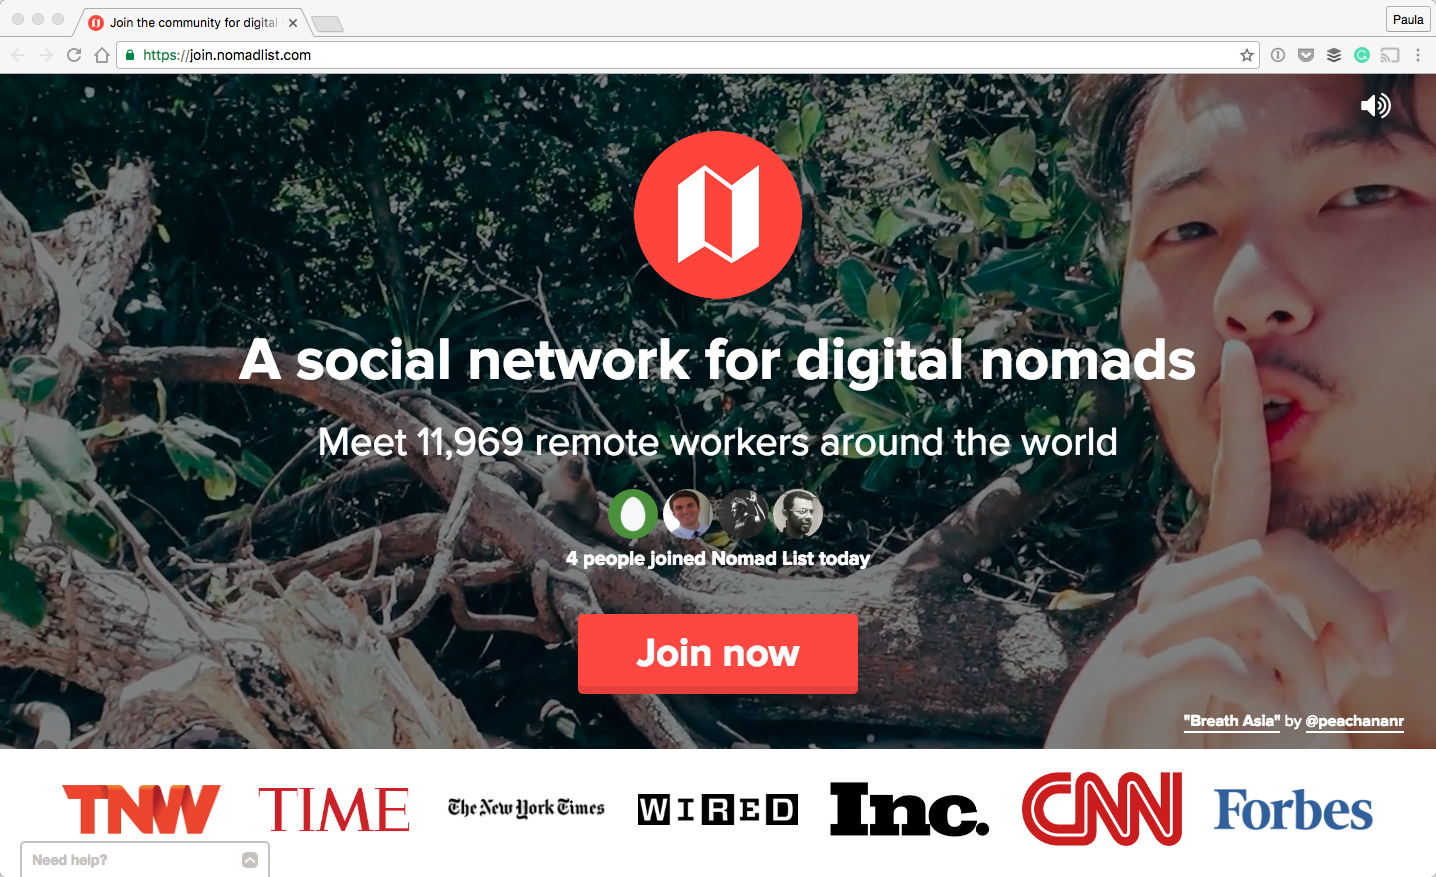 join-the-community-for-digital-nomads-2016-10-02-02-49-00